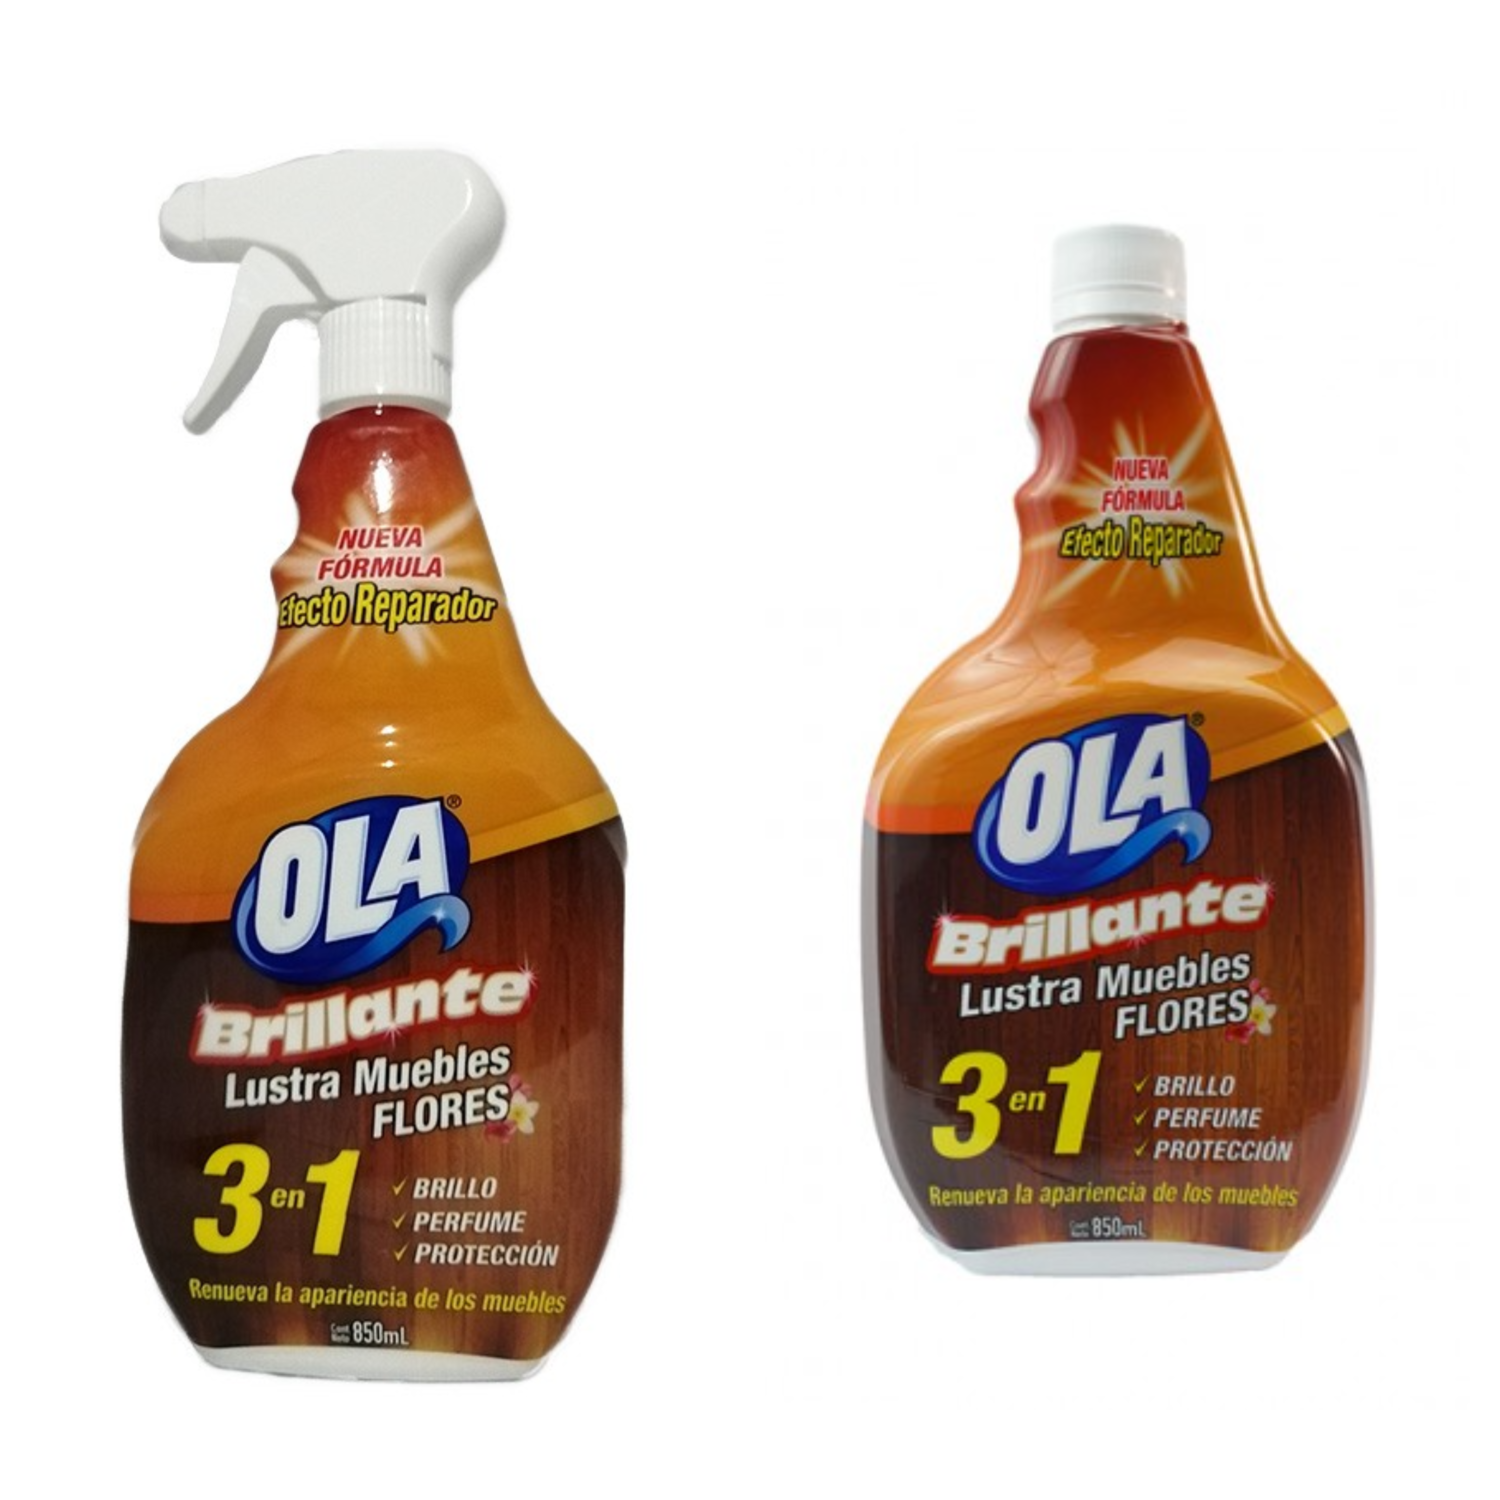 Lustra muebles Ola Brillante 850 ml